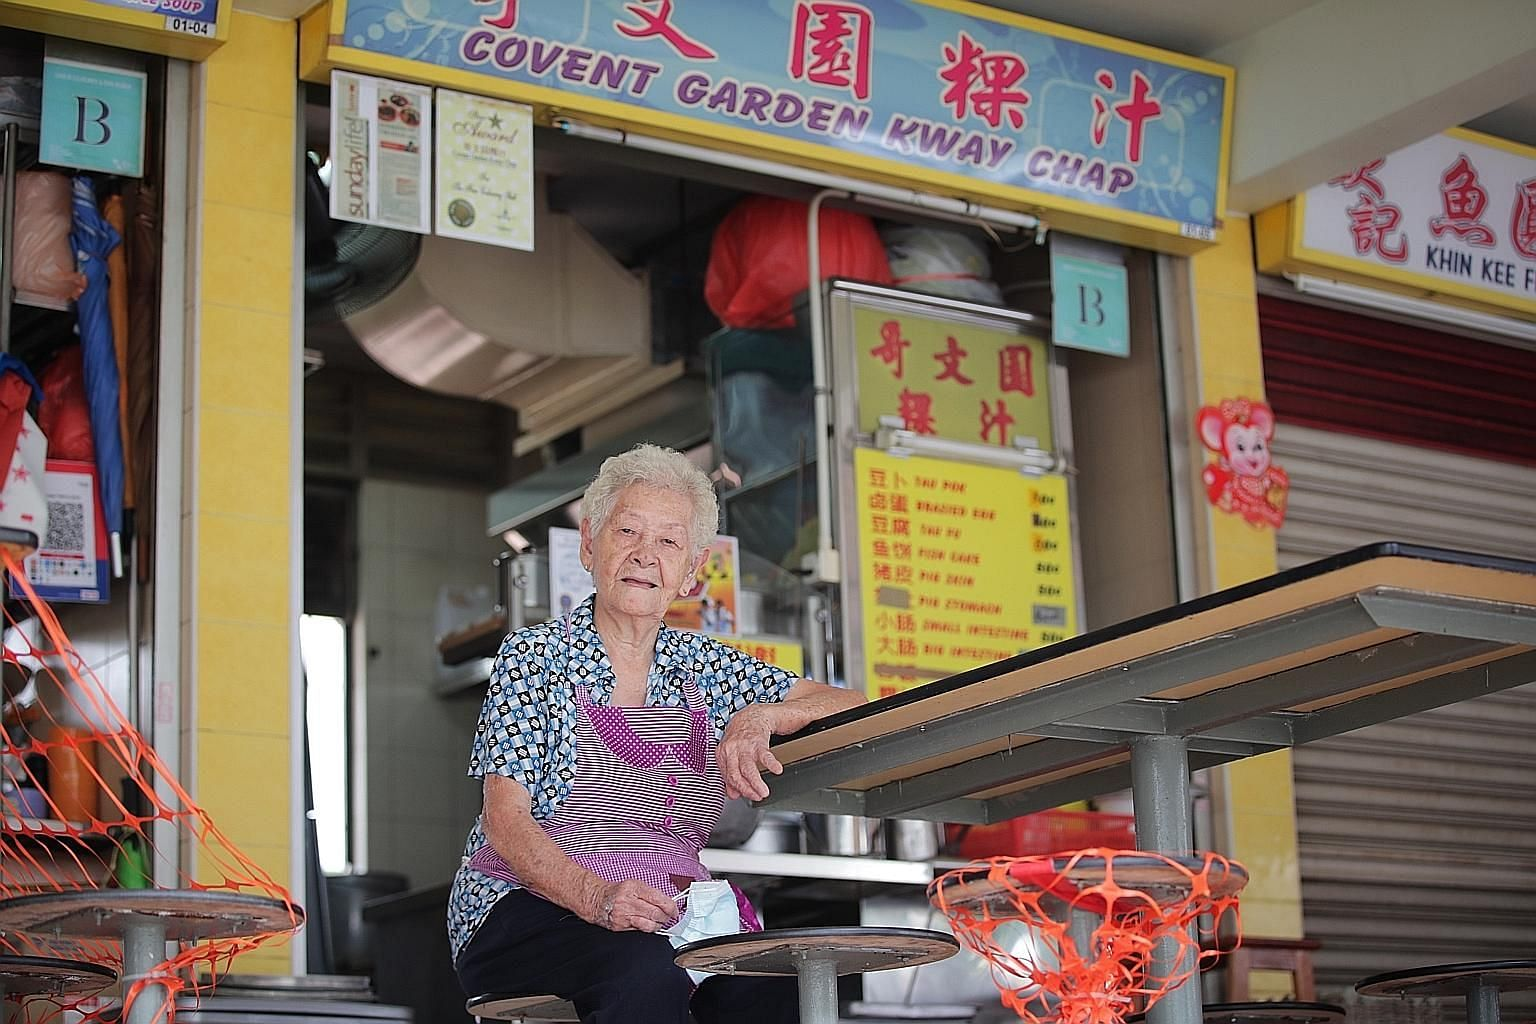 Madam Chua Meow Ching started selling kway chap to supplement the family income when she and her sailor husband were raising six children. Although two of her sons have taken over the cooking at Covent Garden Kway Chap in Havelock Road Food Centre, s